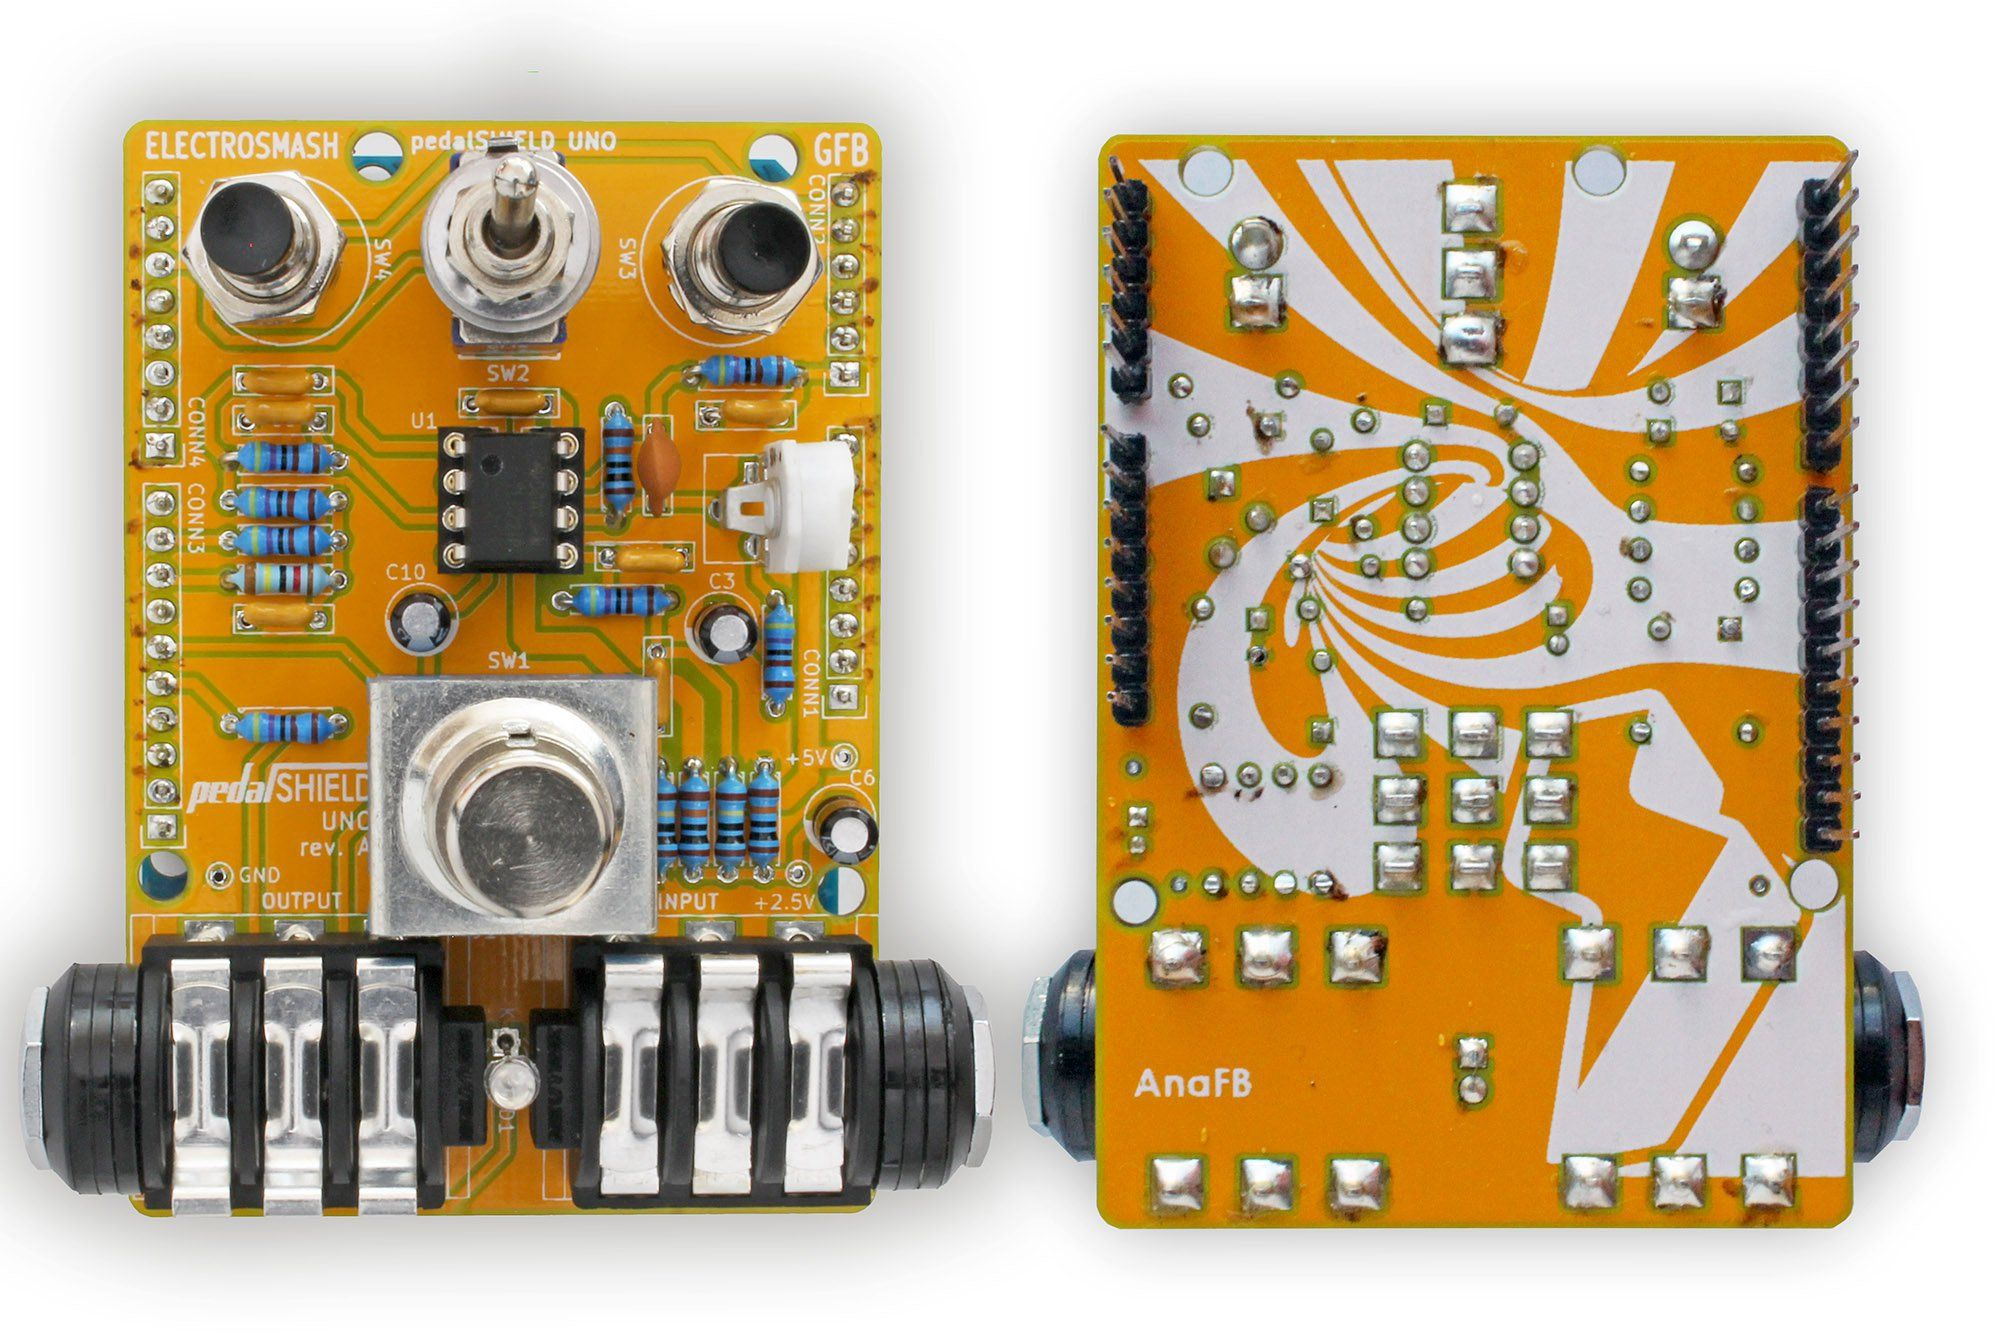 Build An Arduino Guitar Pedal Stompbox Amp Building 5v Symmetrical Regulated Power Supply 1a Electronicslab Construct With Easy To Find Parts And Youll Be Having Fun Creating Your Own Sounds In Not Time